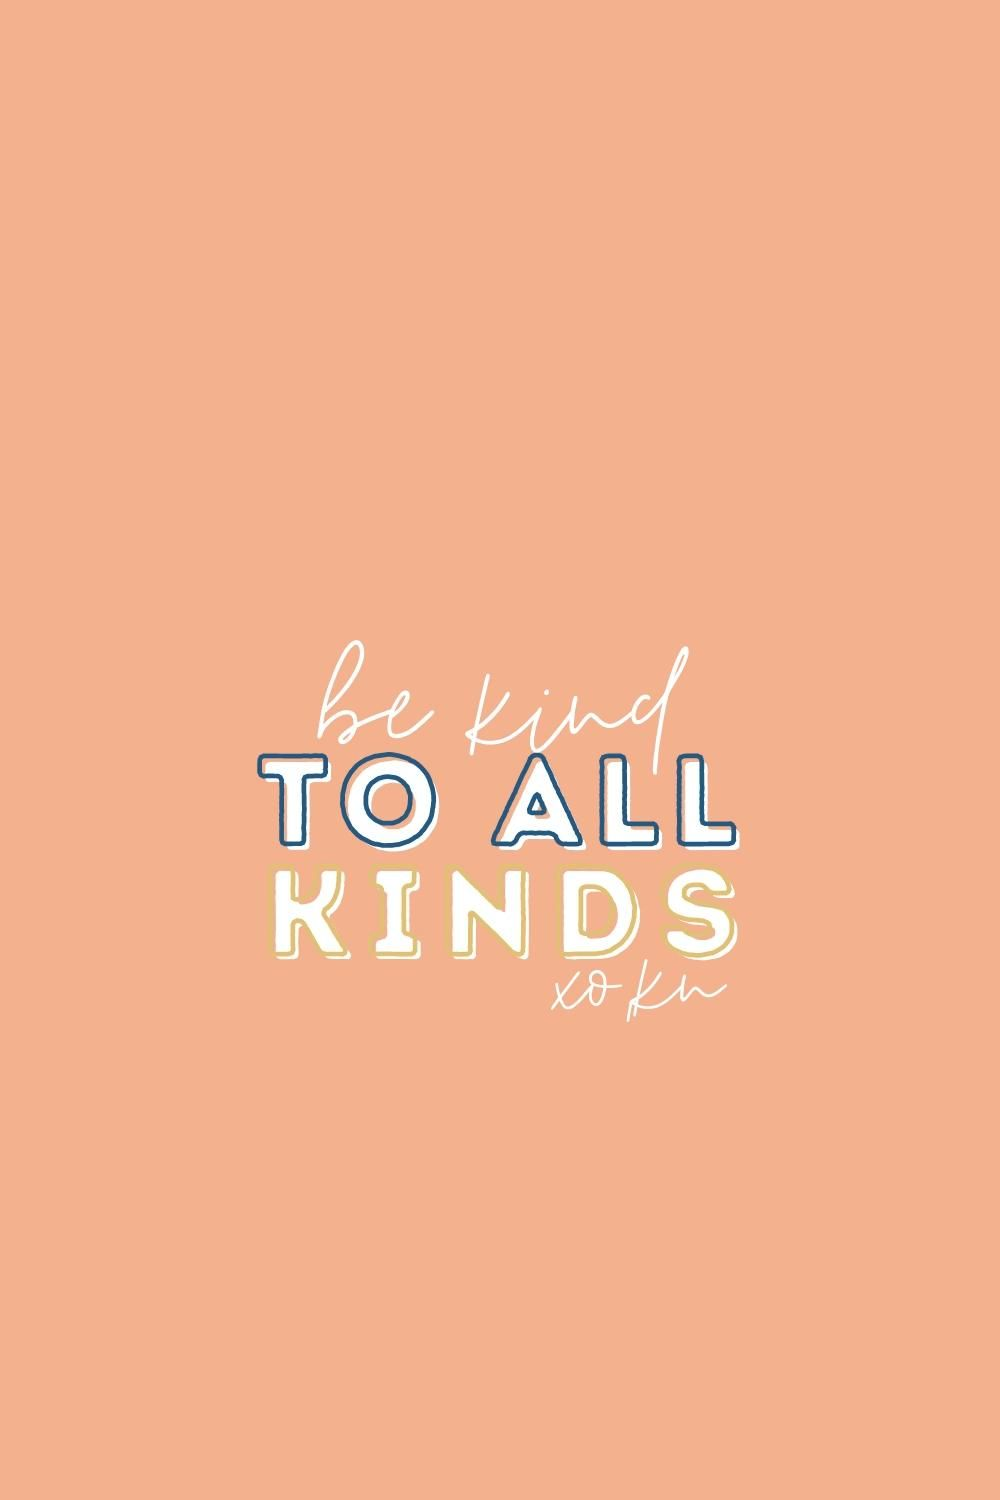 Be kind, to all Kinds.